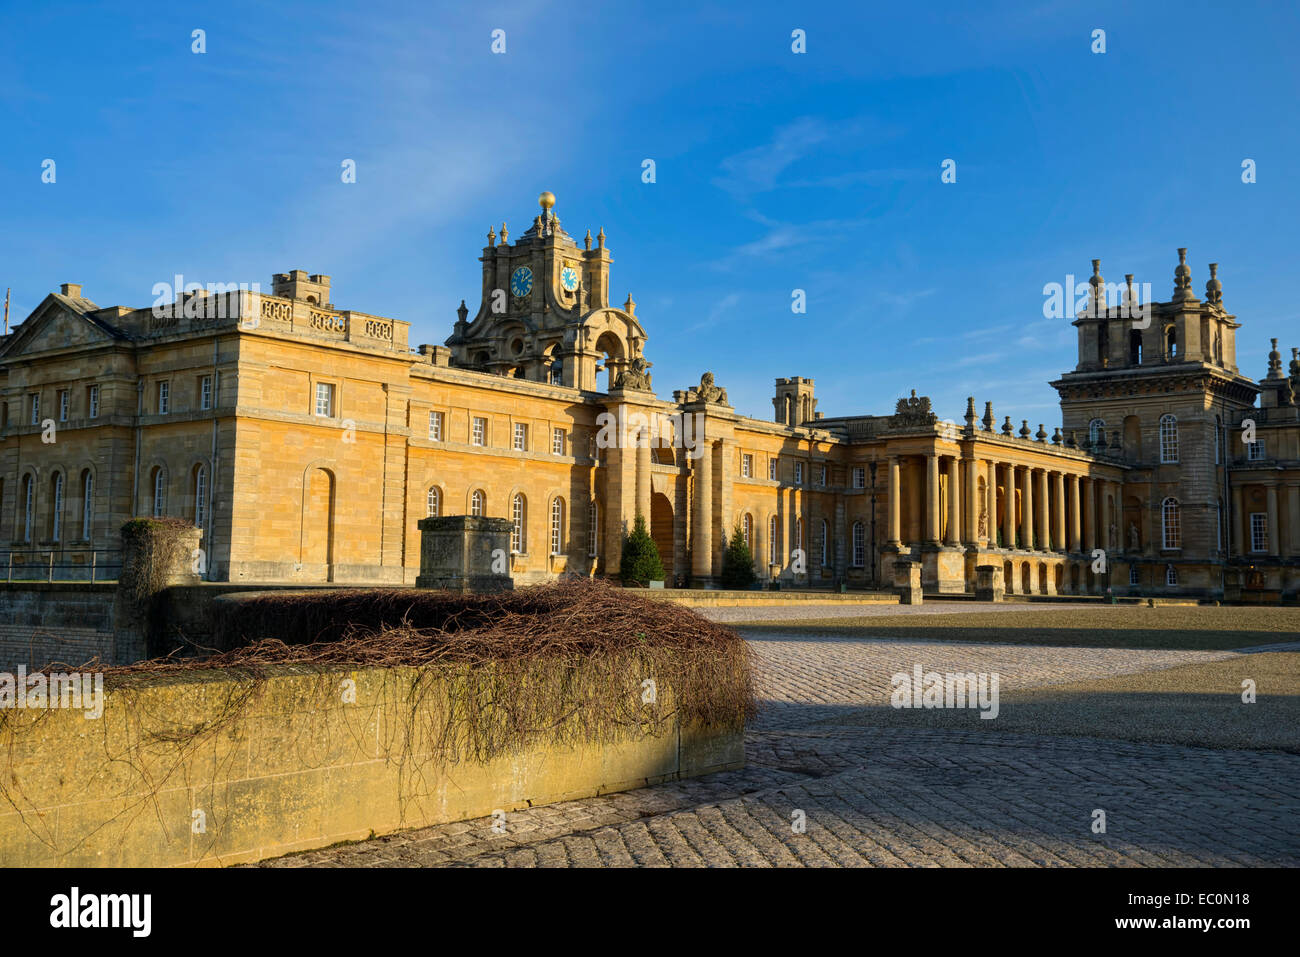 Blenheim Palace Woodstock Oxfordshire England UK - Stock Image